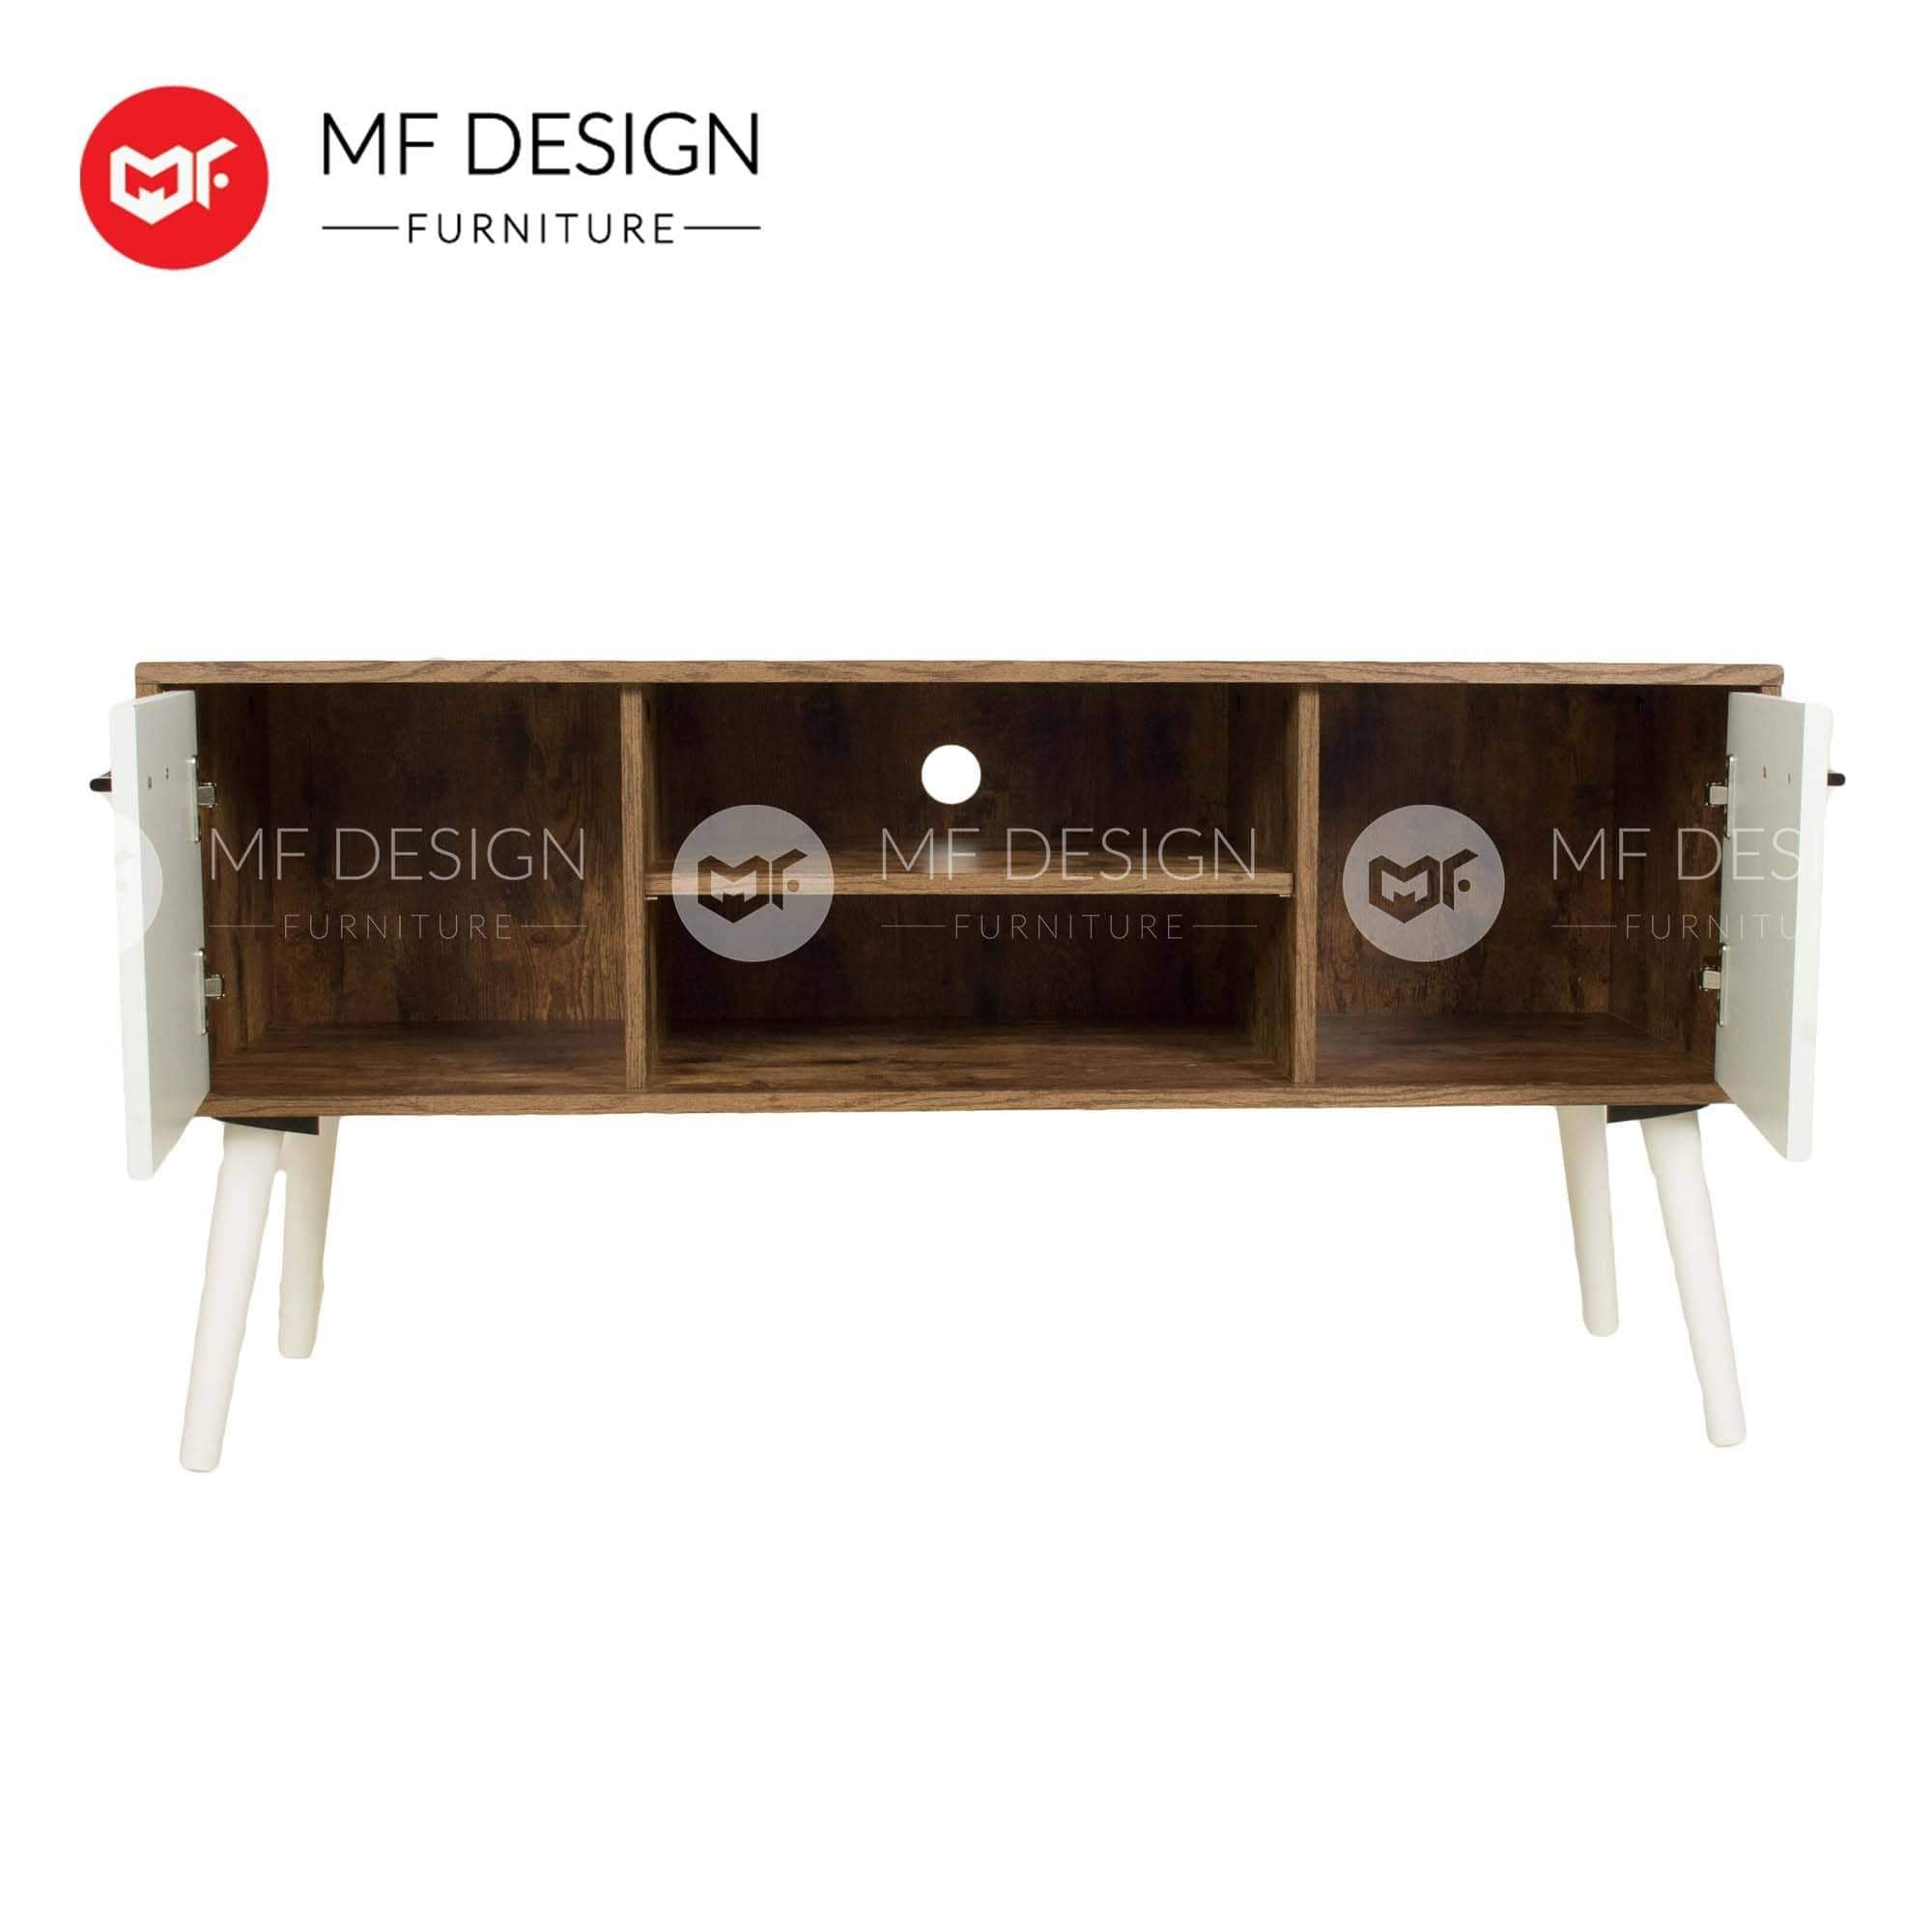 mfdesign88 TV CABINET 4FT MF DESIGN HOLIX 4 FEET TV CABINET (SCANDINAVIAN DESIGN)